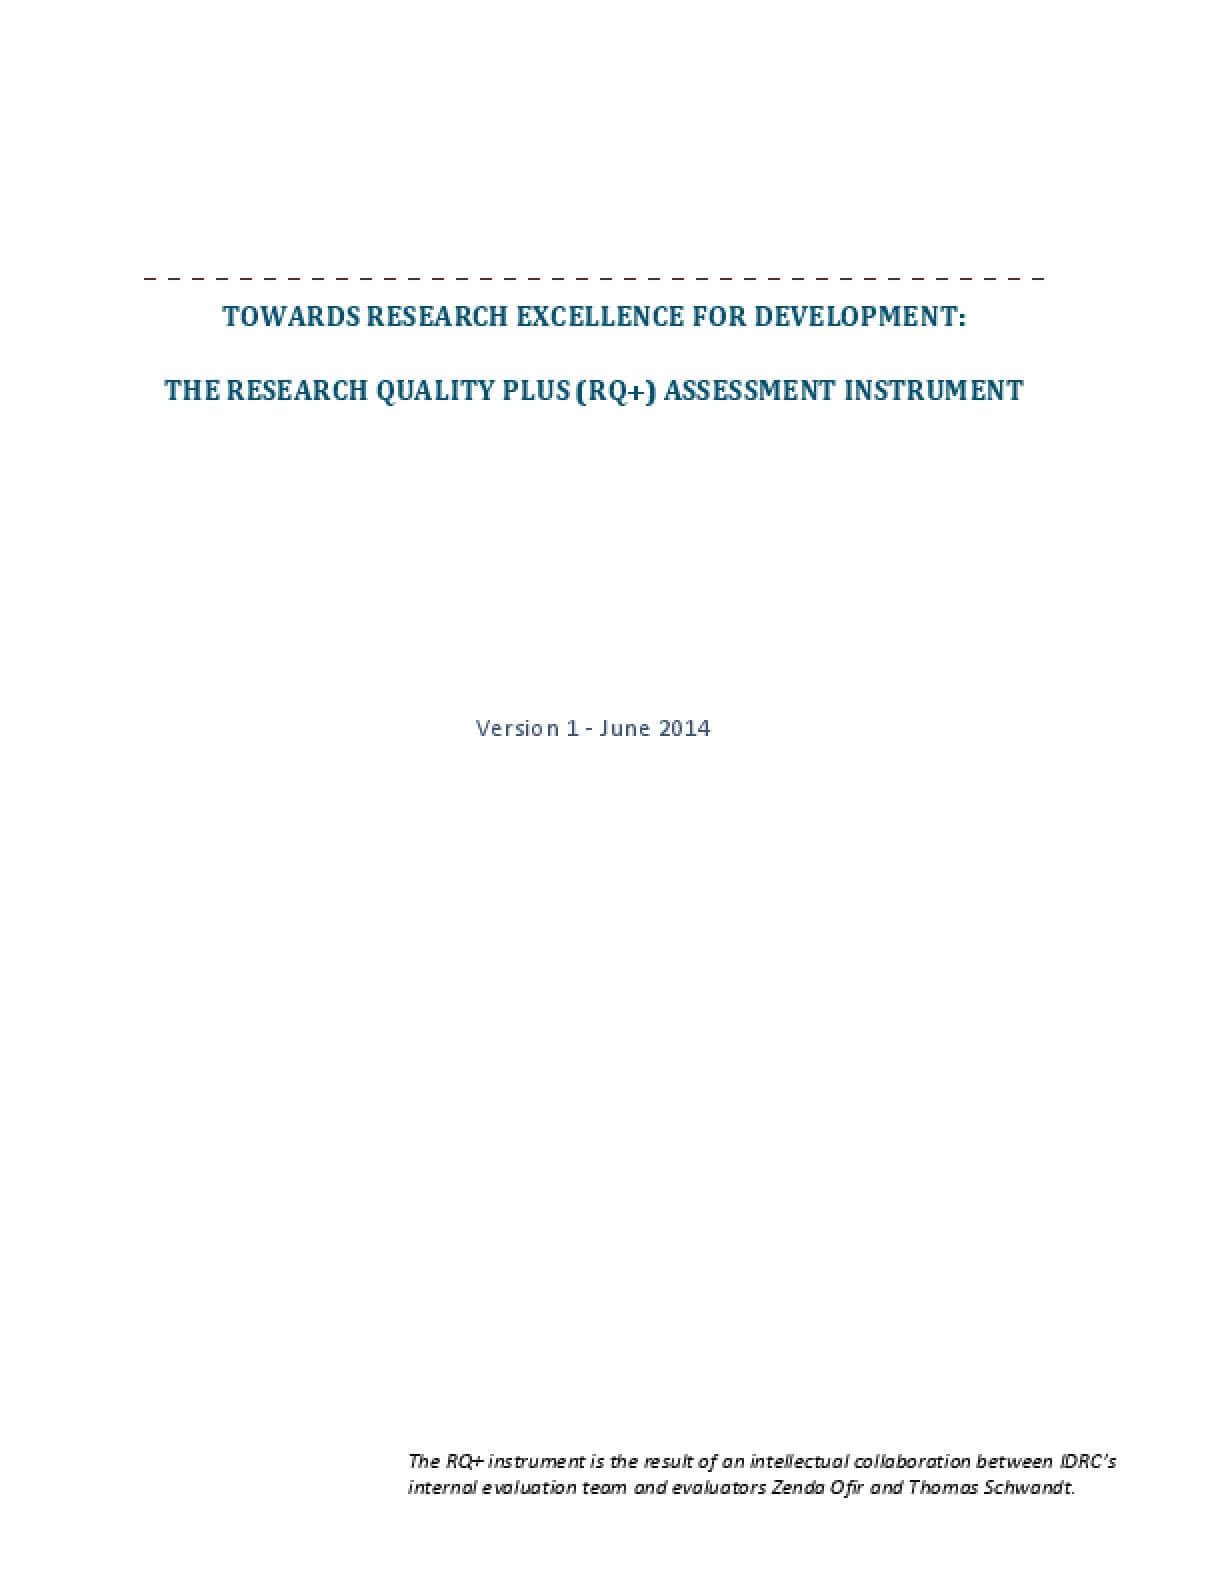 Towards Research Excellence for Development: The Research Quality plus (RQ+) Assessment Instrument